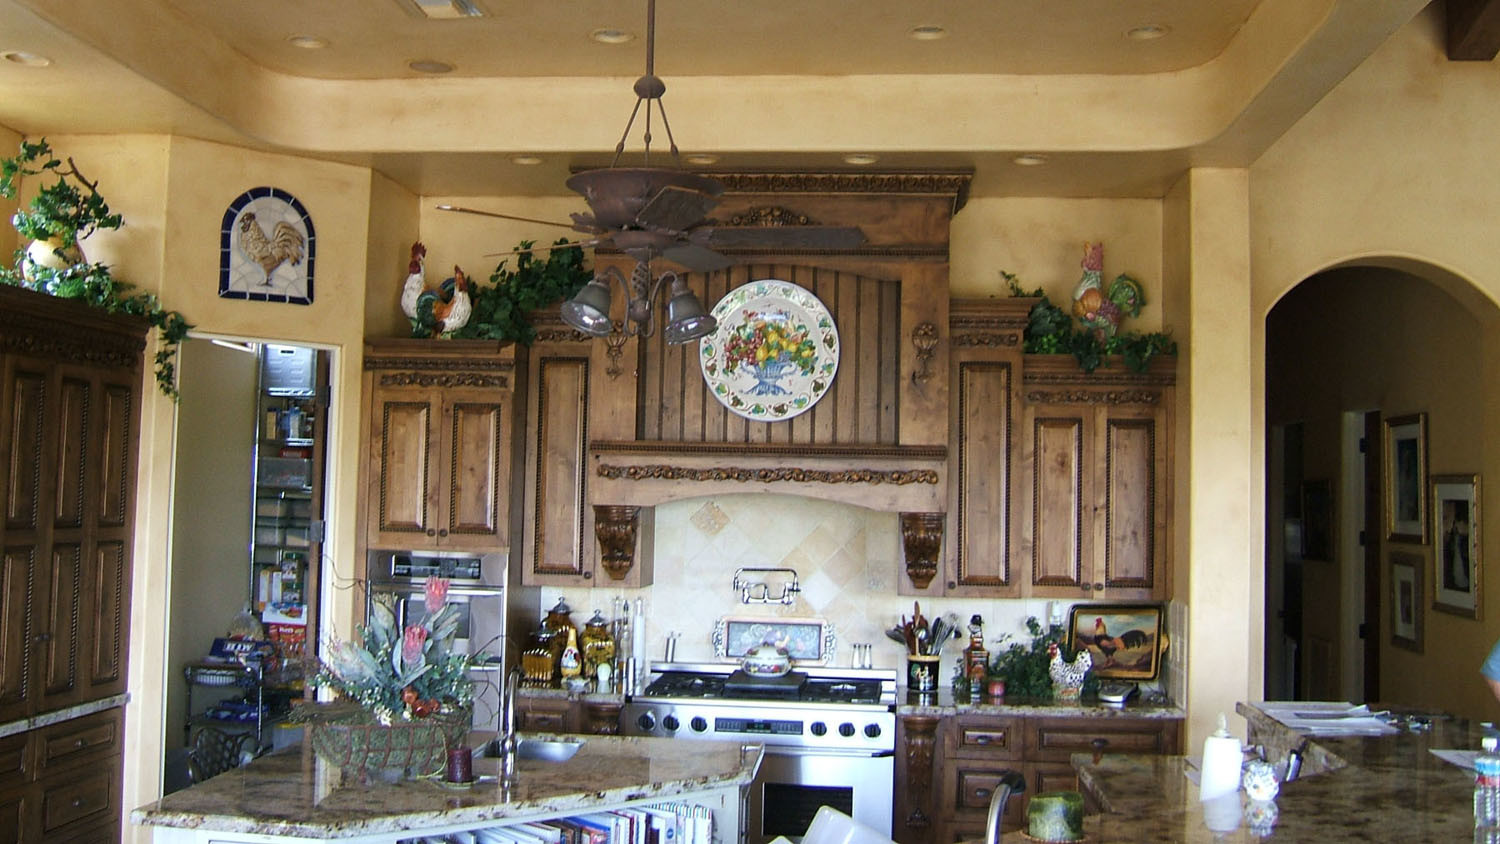 1000 images about kitchens on pinterest dream kitchens for Country kitchen cabinets